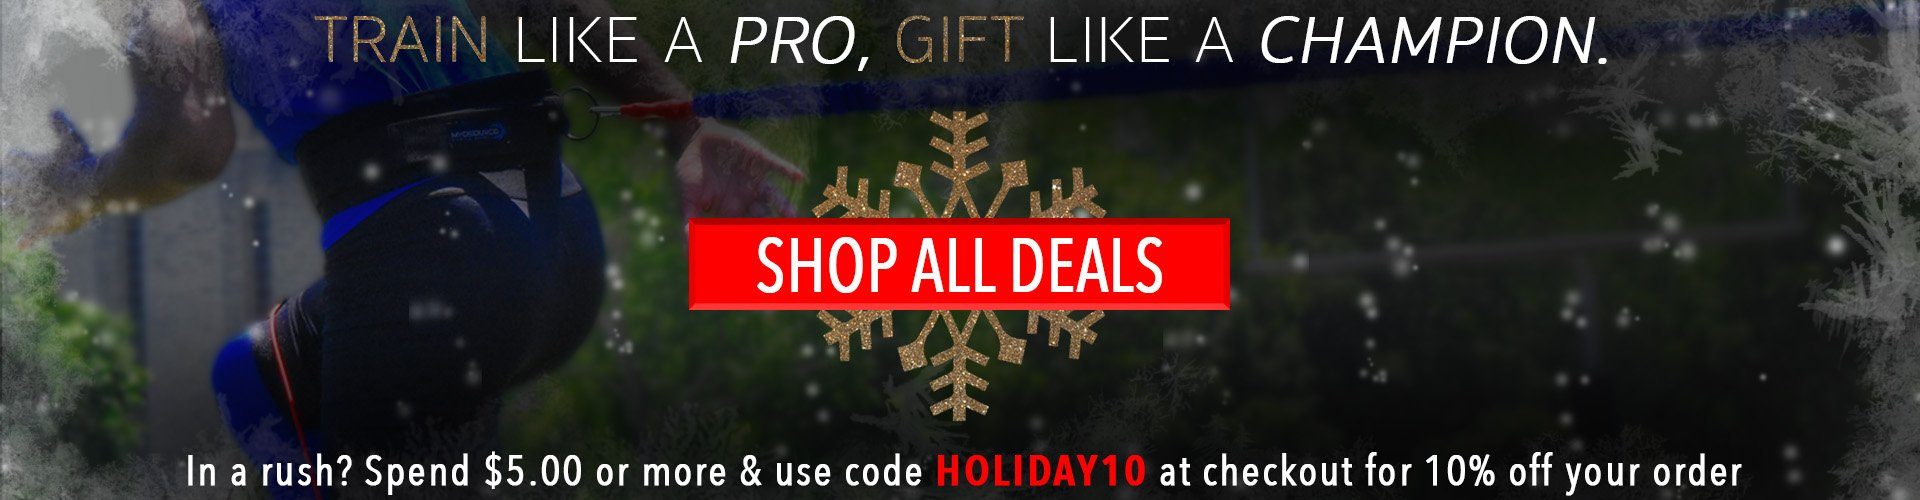 Train Like a Pro, Gift Like a Champion. In a rush? Spend $5.00 or more and use code HOLIDAY10 at checkout for 10% off your order. Shop all Deals.